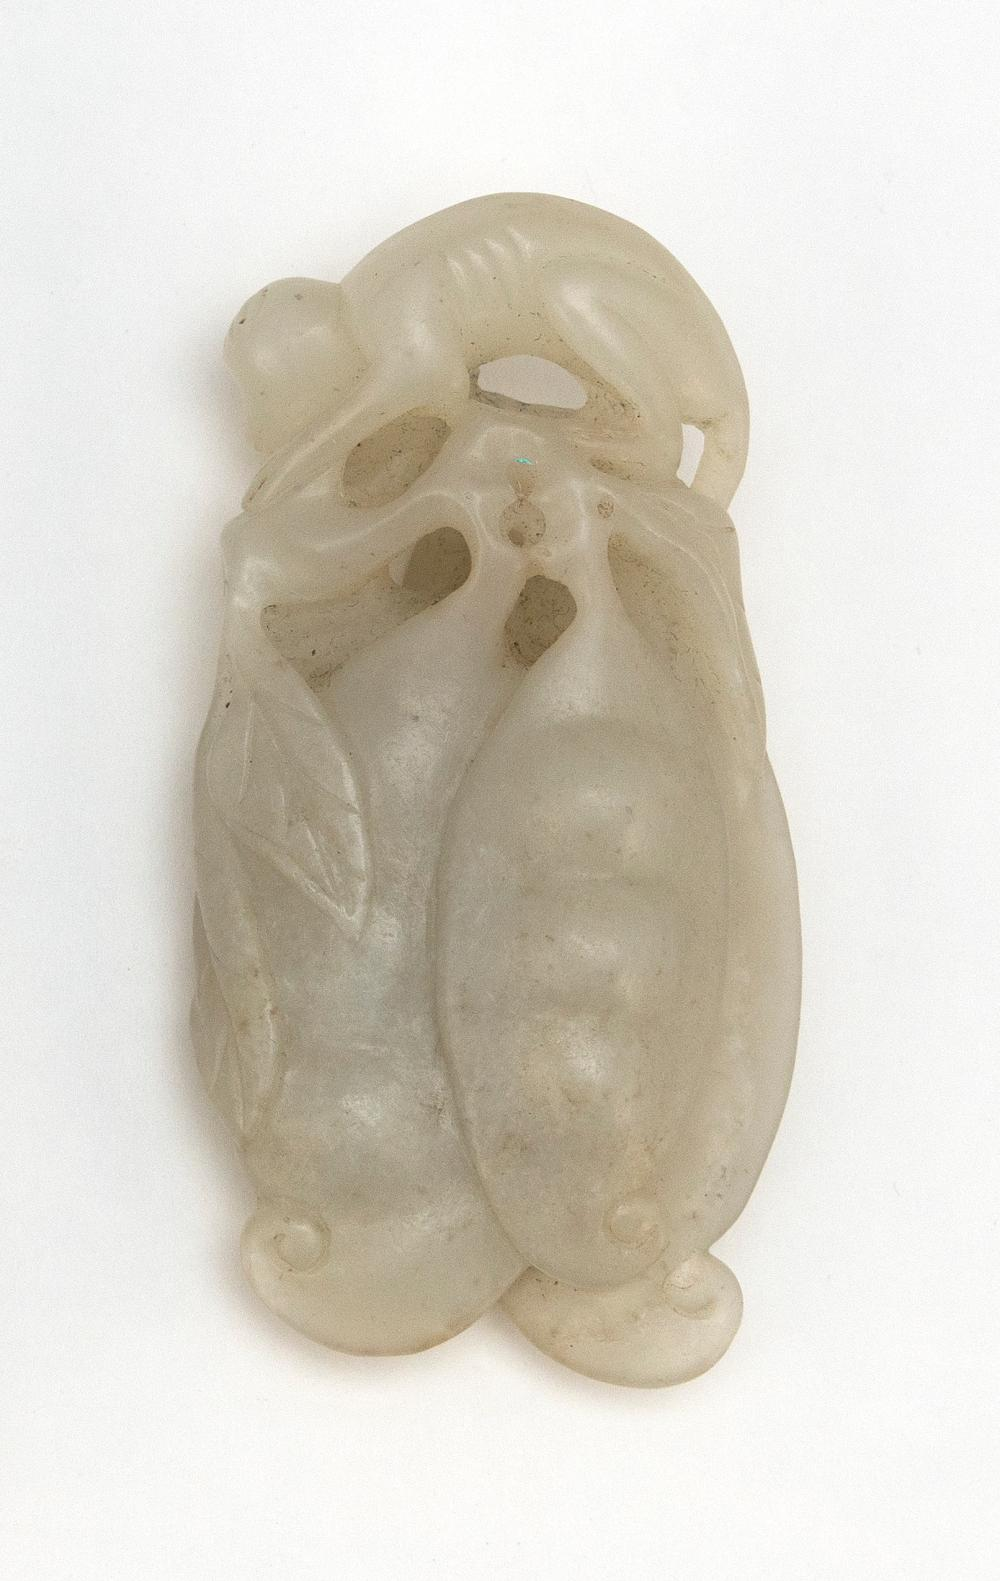 CHINESE PALE CELADON JADE PENDANT In the form of a monkey with two large peapods. Length 3.2